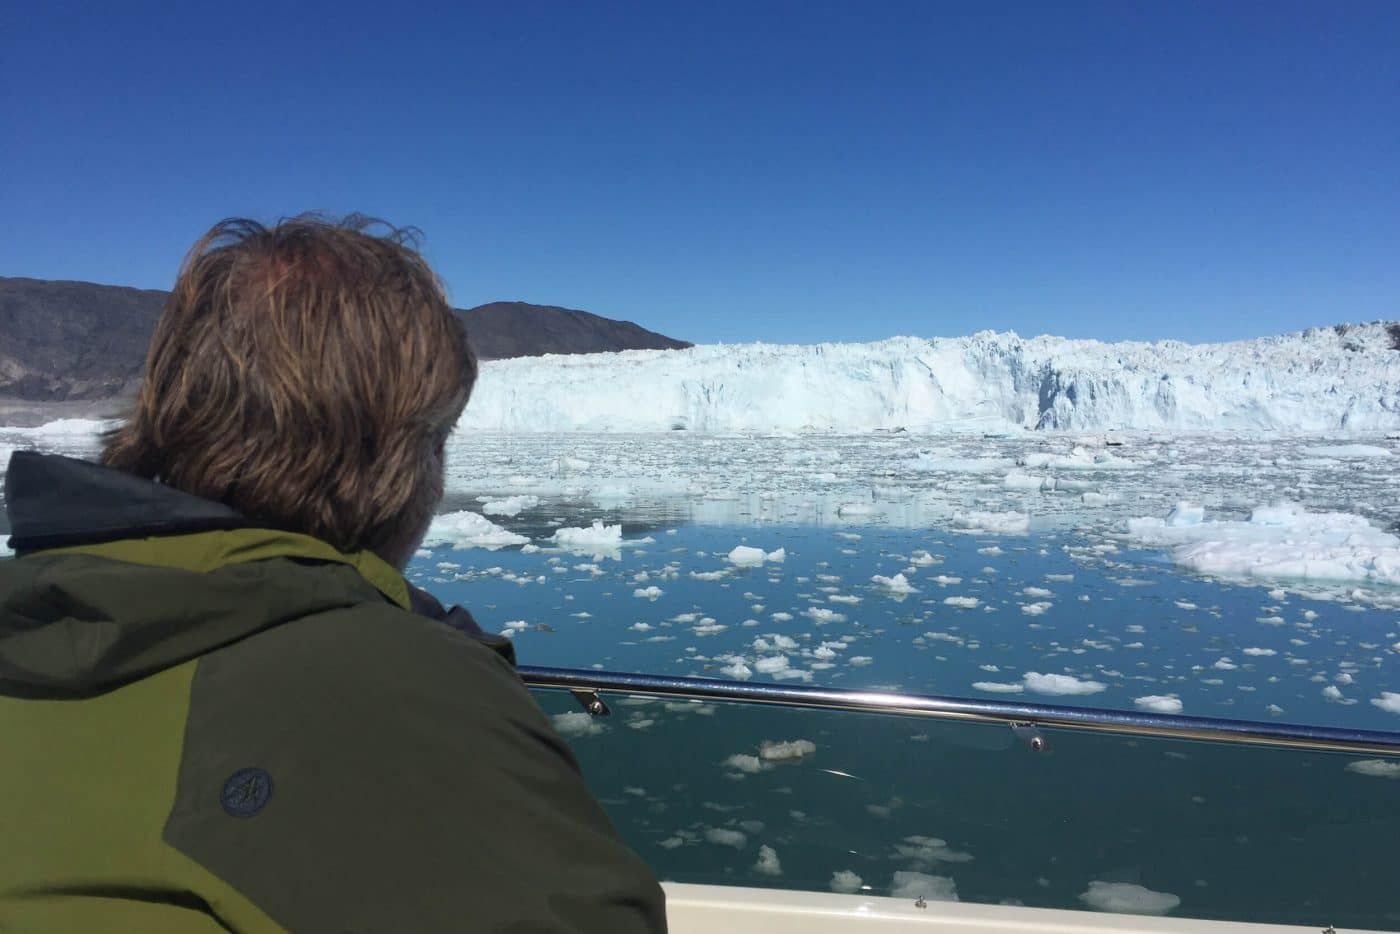 Tourist looking over a glacier from a boat under clear blue skies. Photo by Arctic Nomad, Visit Greenland